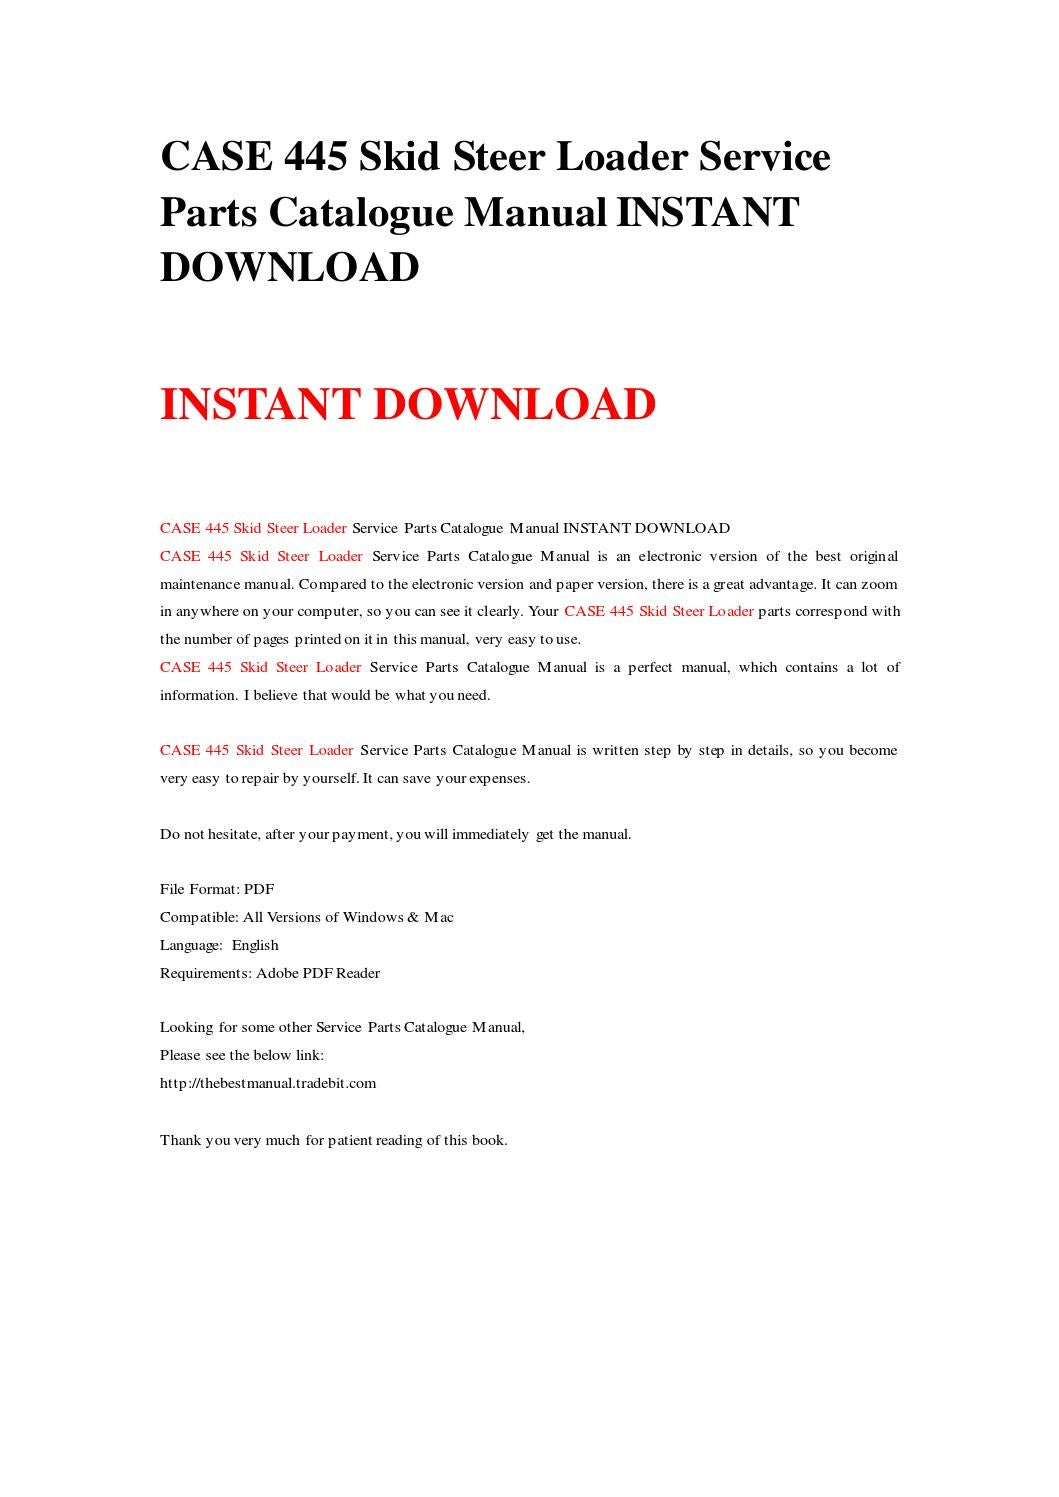 Case 445 skid steer loader service parts catalogue manual instant download  by rrrepairmanual - issuu